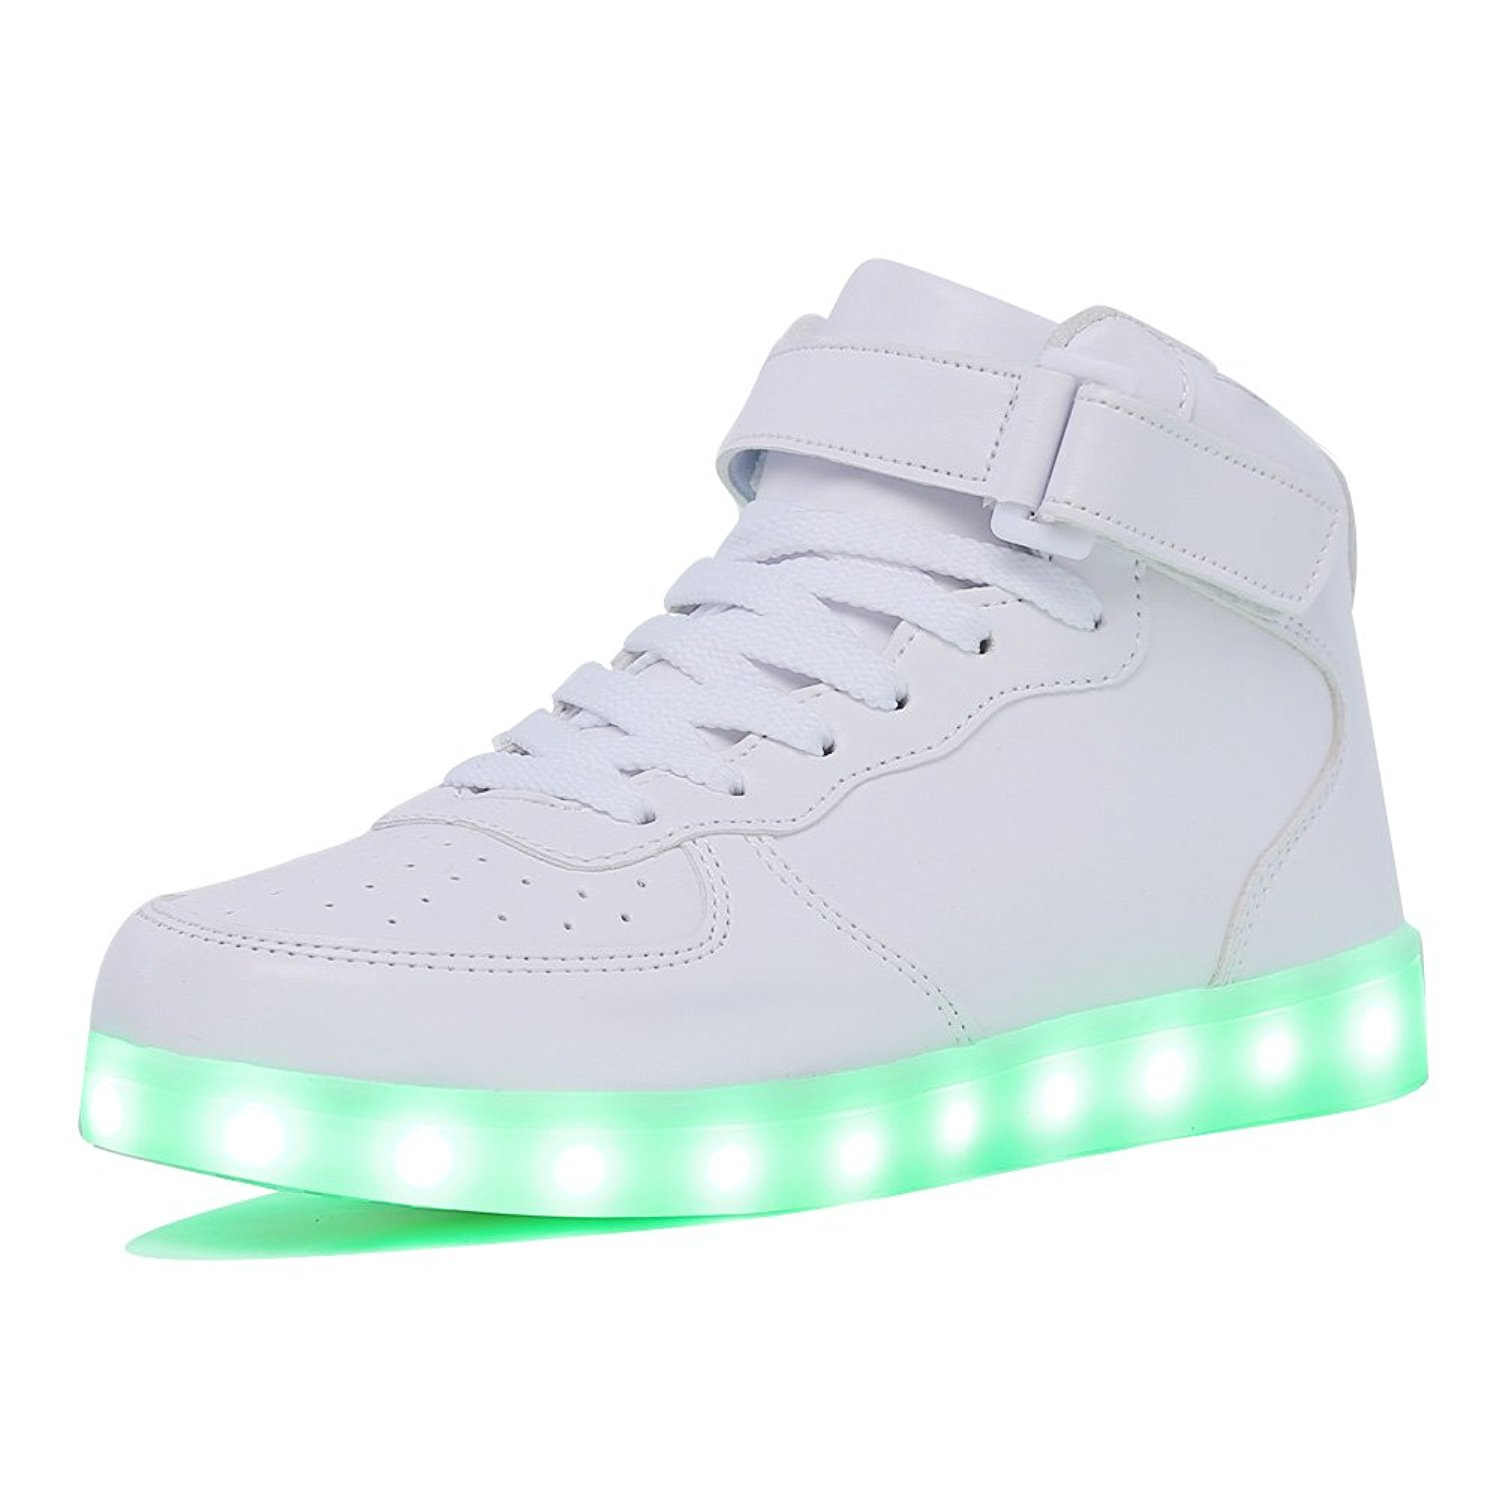 Laisumk Usb Charger Glowing Luminous Sneakers Feminino Baskets With Light Sole Mens Led Casual Shoes Light Up Unisex Shoes At Any Cost Men's Shoes